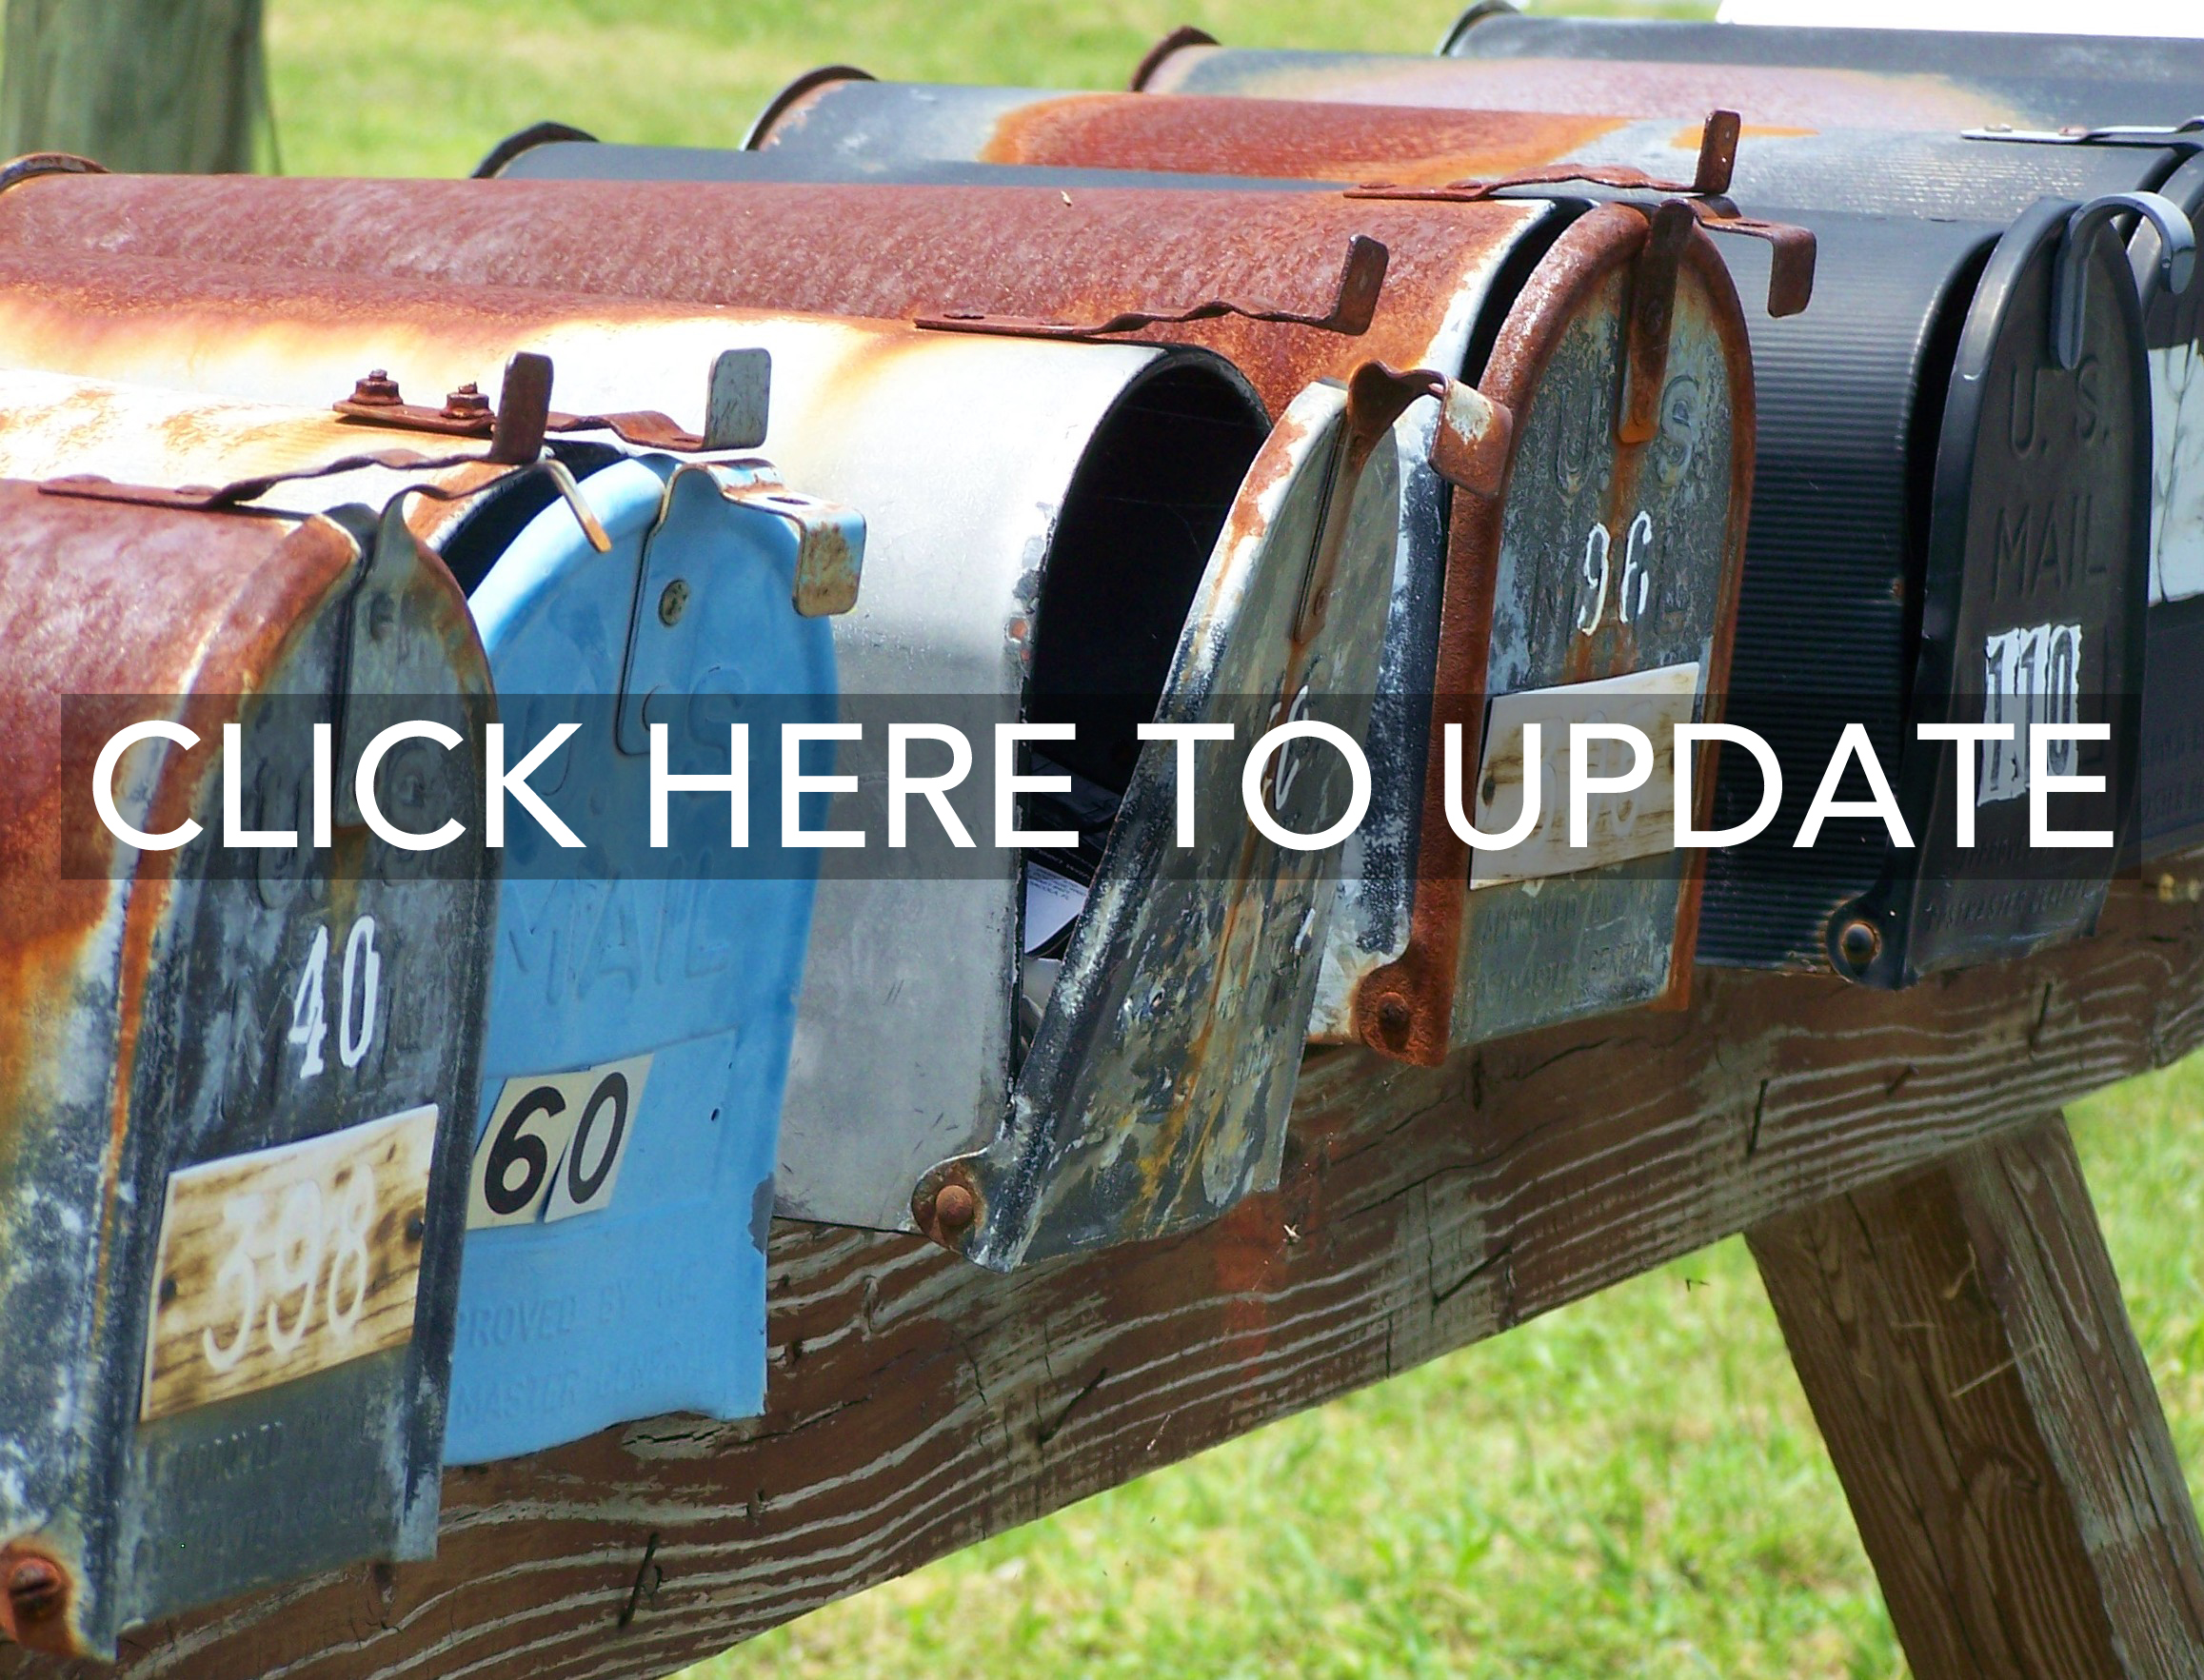 Update your directory information here.